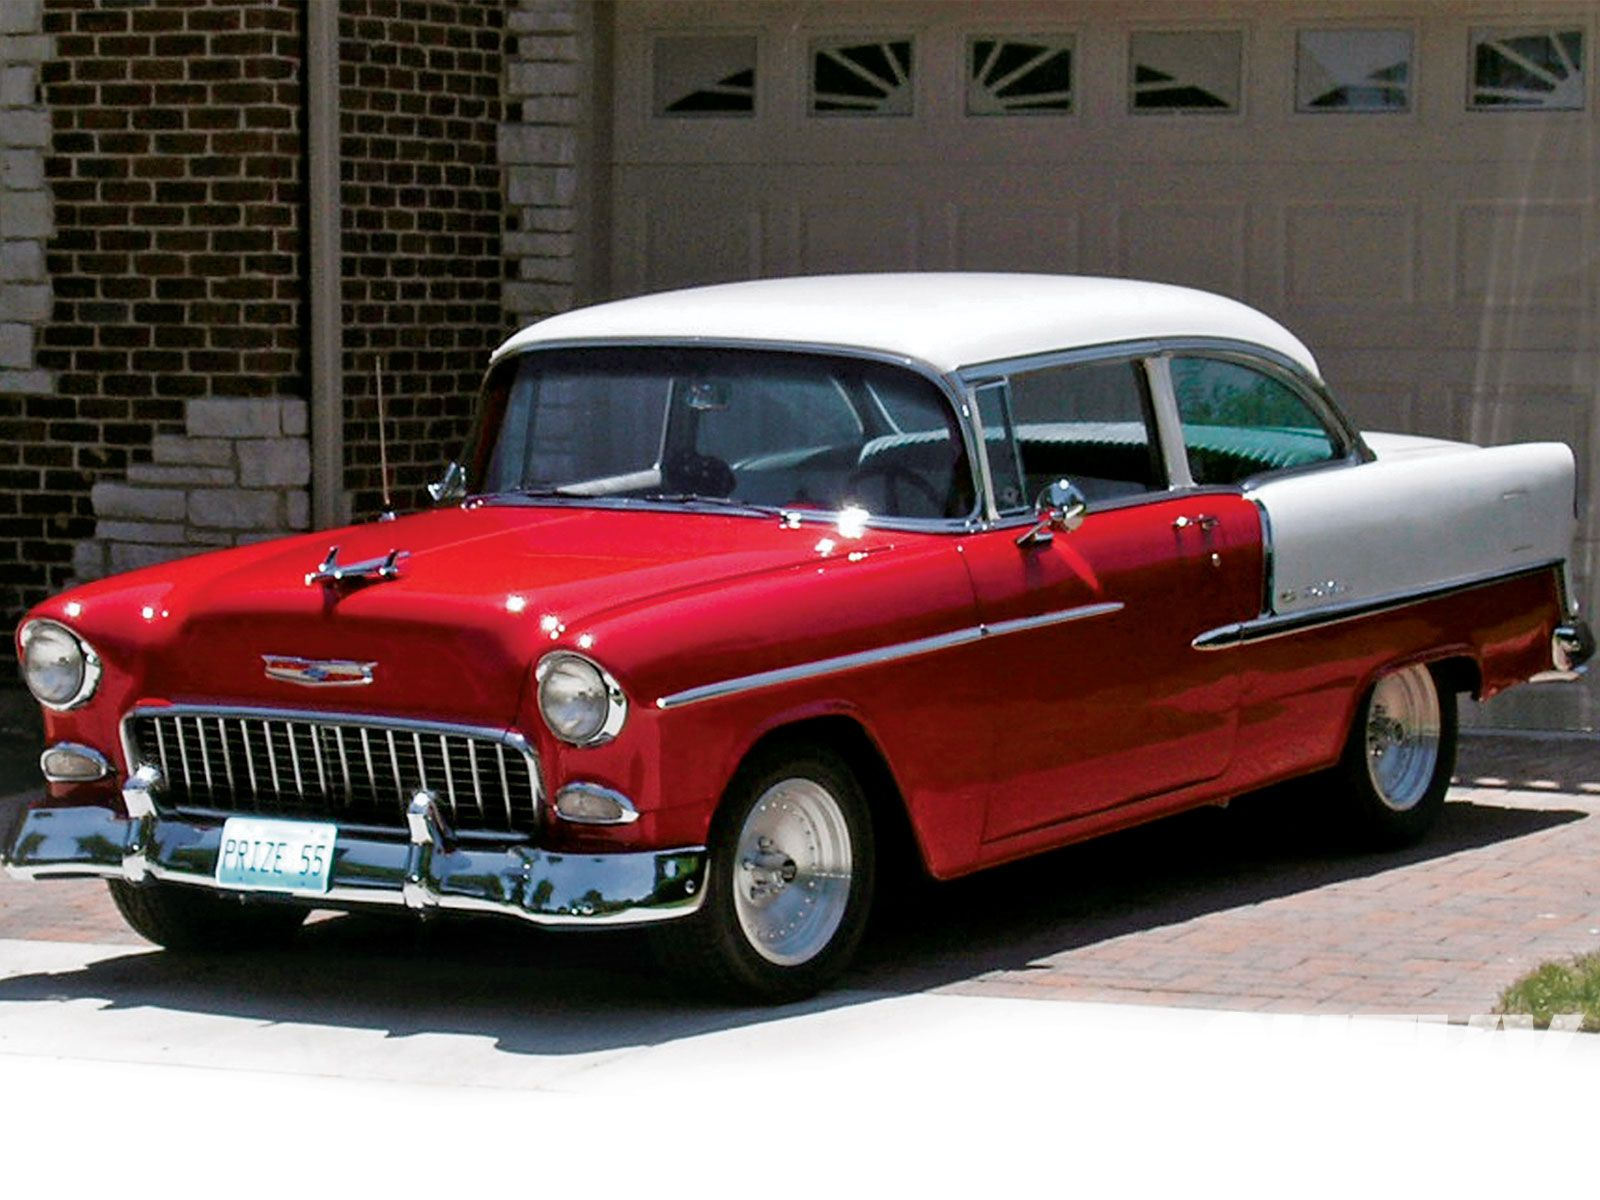 marilyn mcnalley 1955 chevrolet belair remember dad s was just like this except the